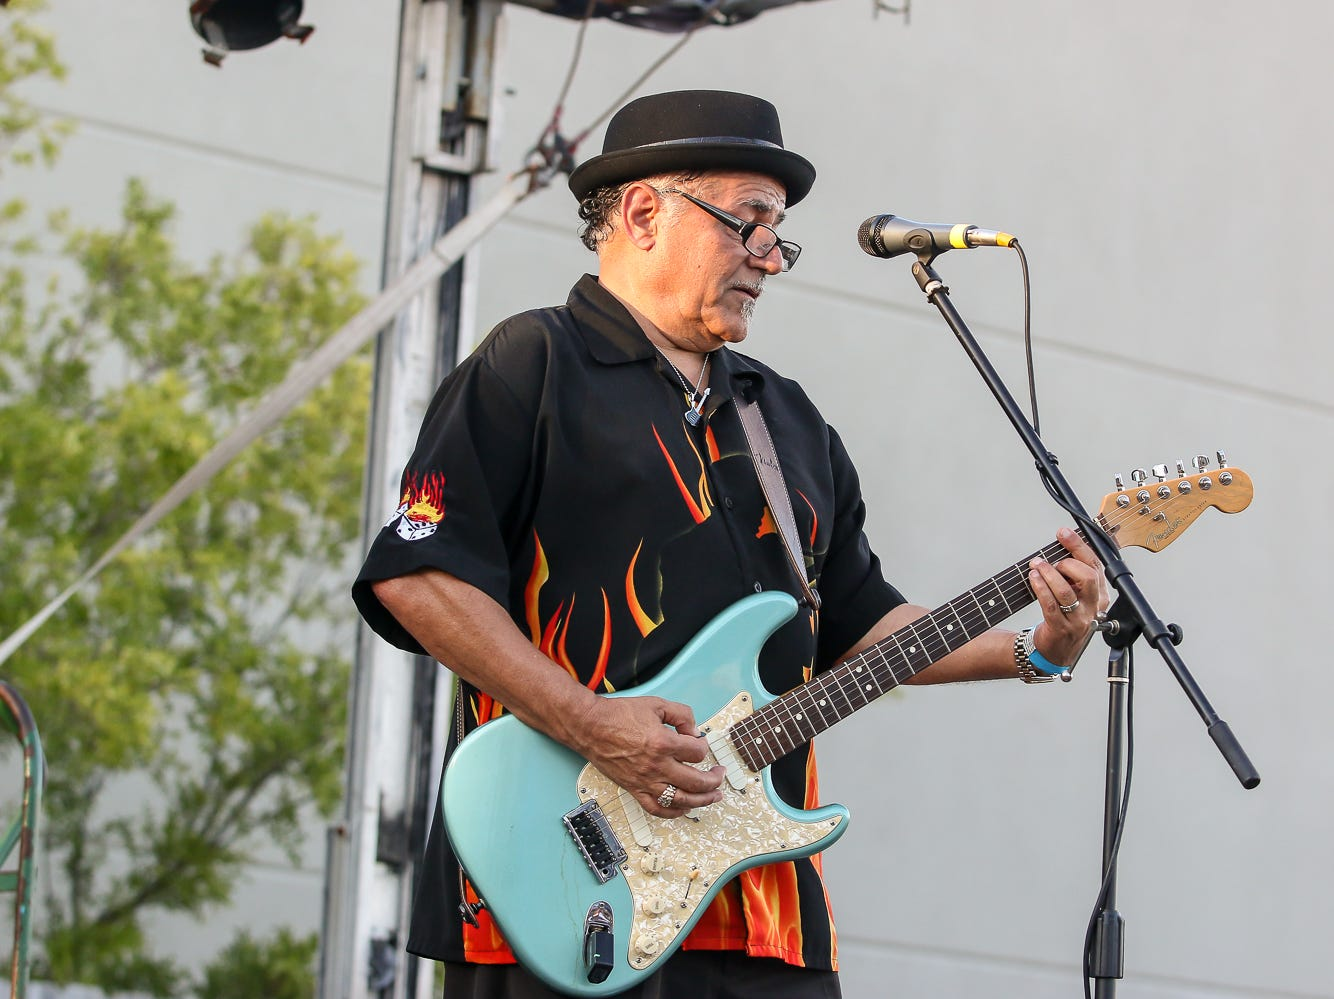 Cat Daddy Blues Band performs during the 23rd annual Emerald Coast Beer Festival at Seville Quarter on Friday, September 7, 2018. The event helps raise money for the Alfred-Washburn Center and Seville Rotary Club.